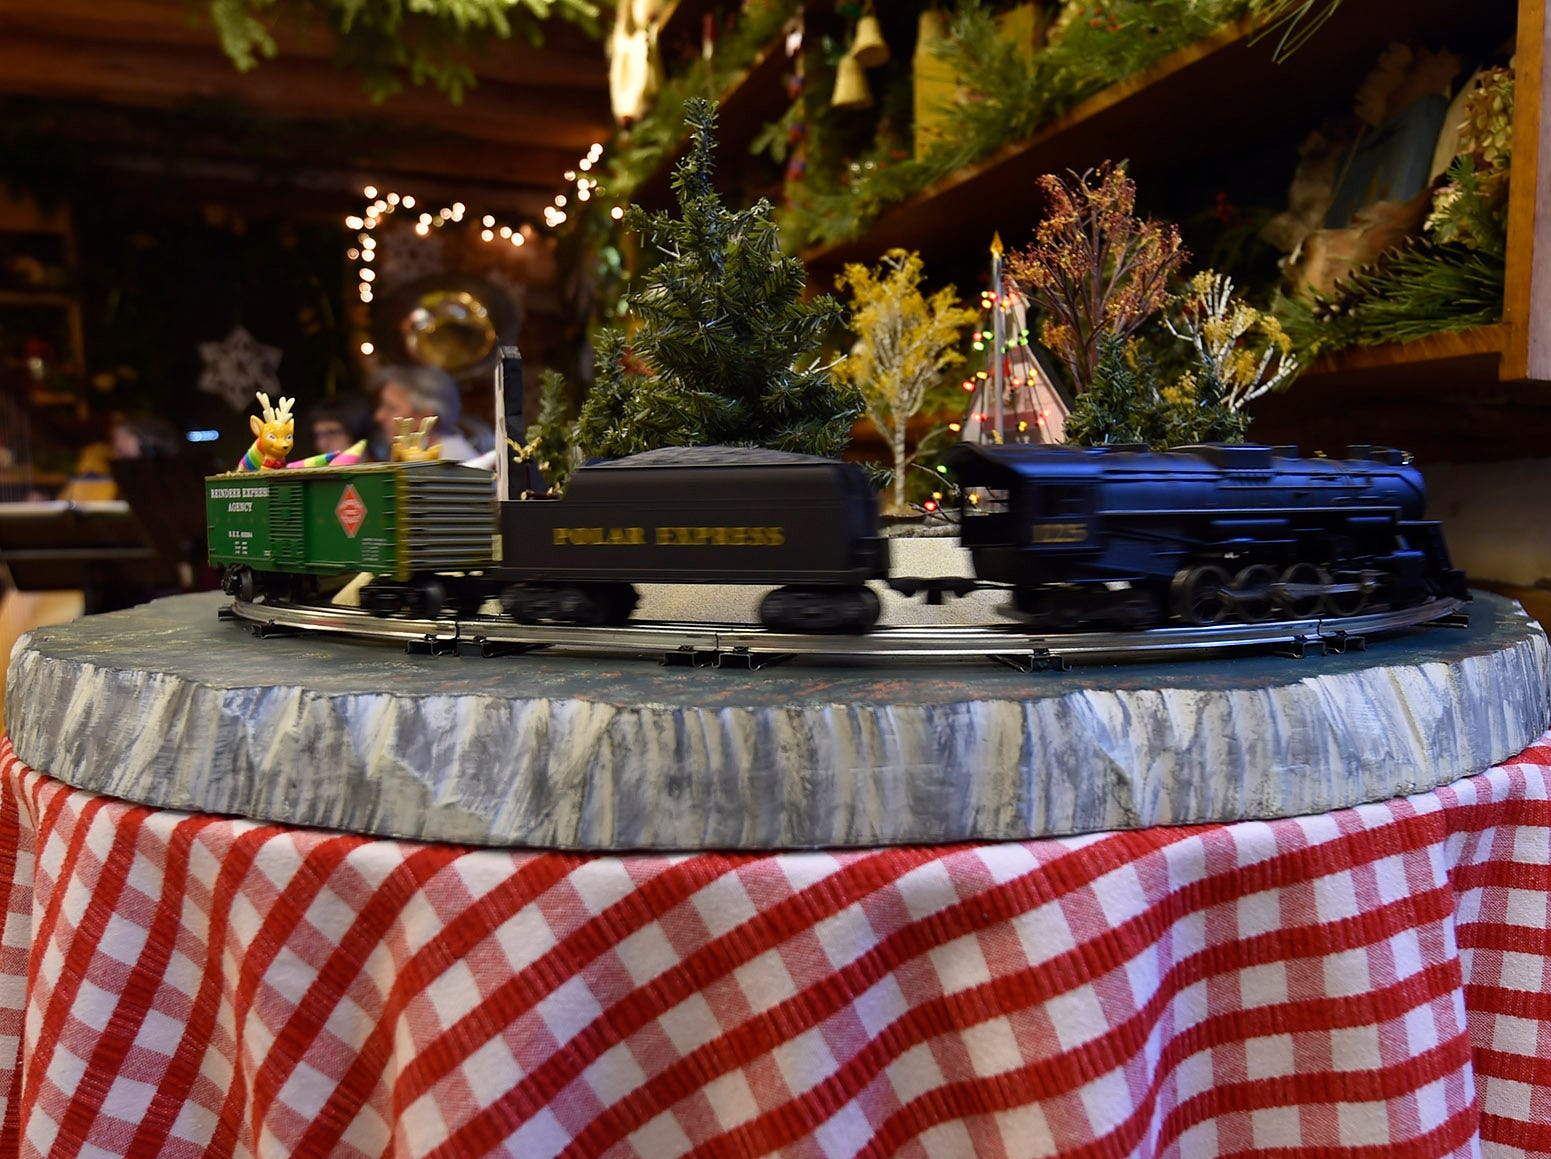 A locomotive in motion inside Kaye Cabin during Natural Christmas at The Ridges Sanctuary, Baileys Harbor, on Saturday, Dec. 8, 2018. Tina M. Gohr/USA TODAY NETWORK-Wisconsin